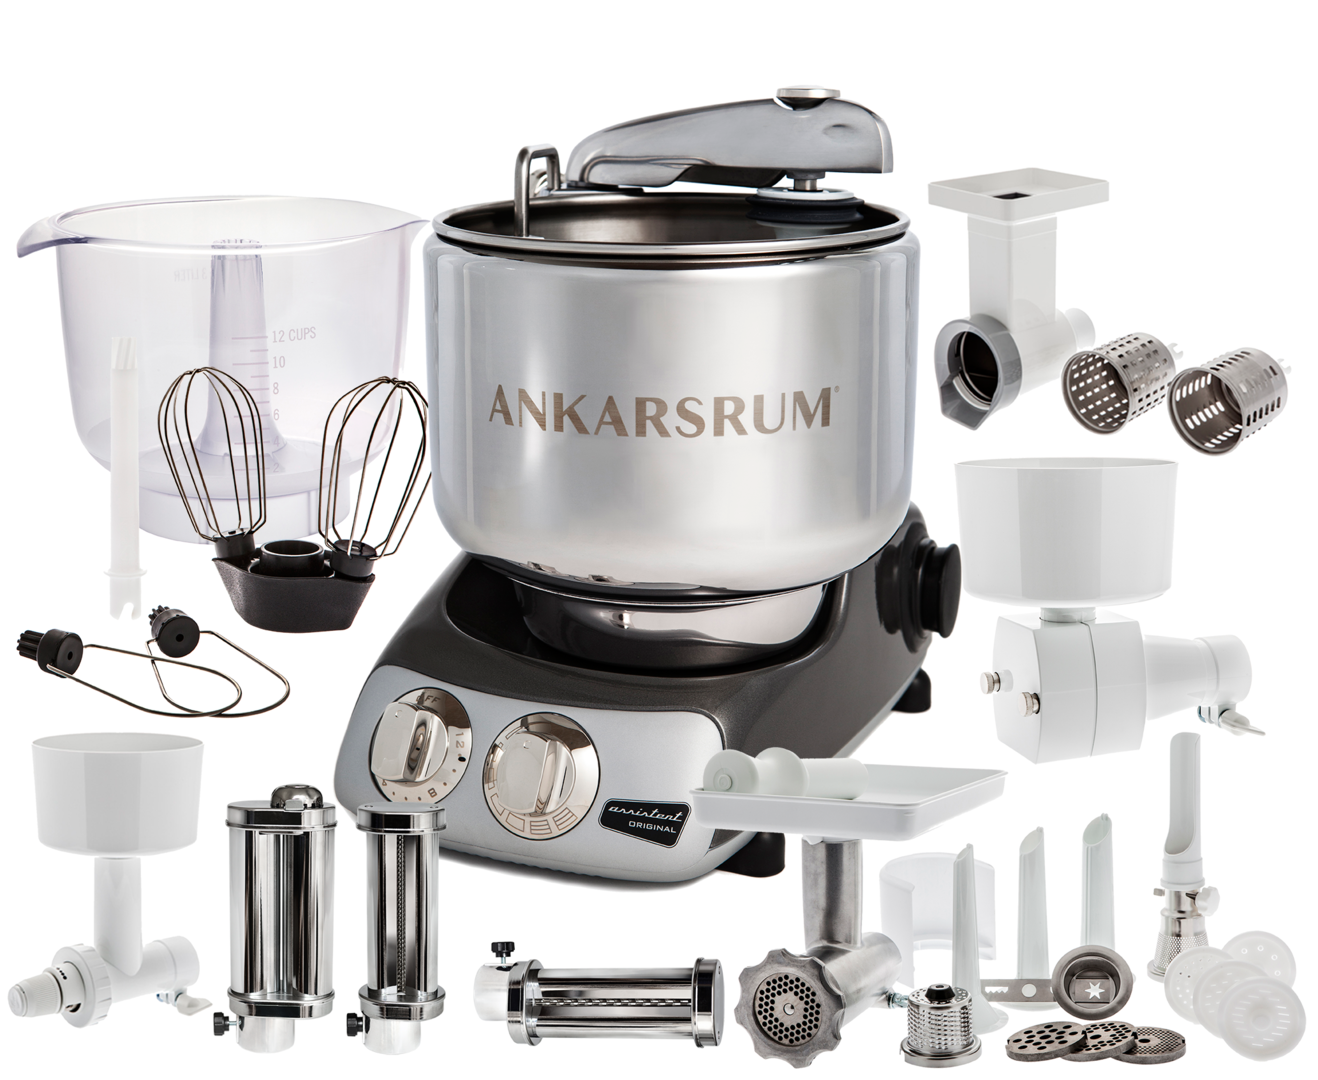 Ankarsrum Original Total mixer, Black chrome (2300107)